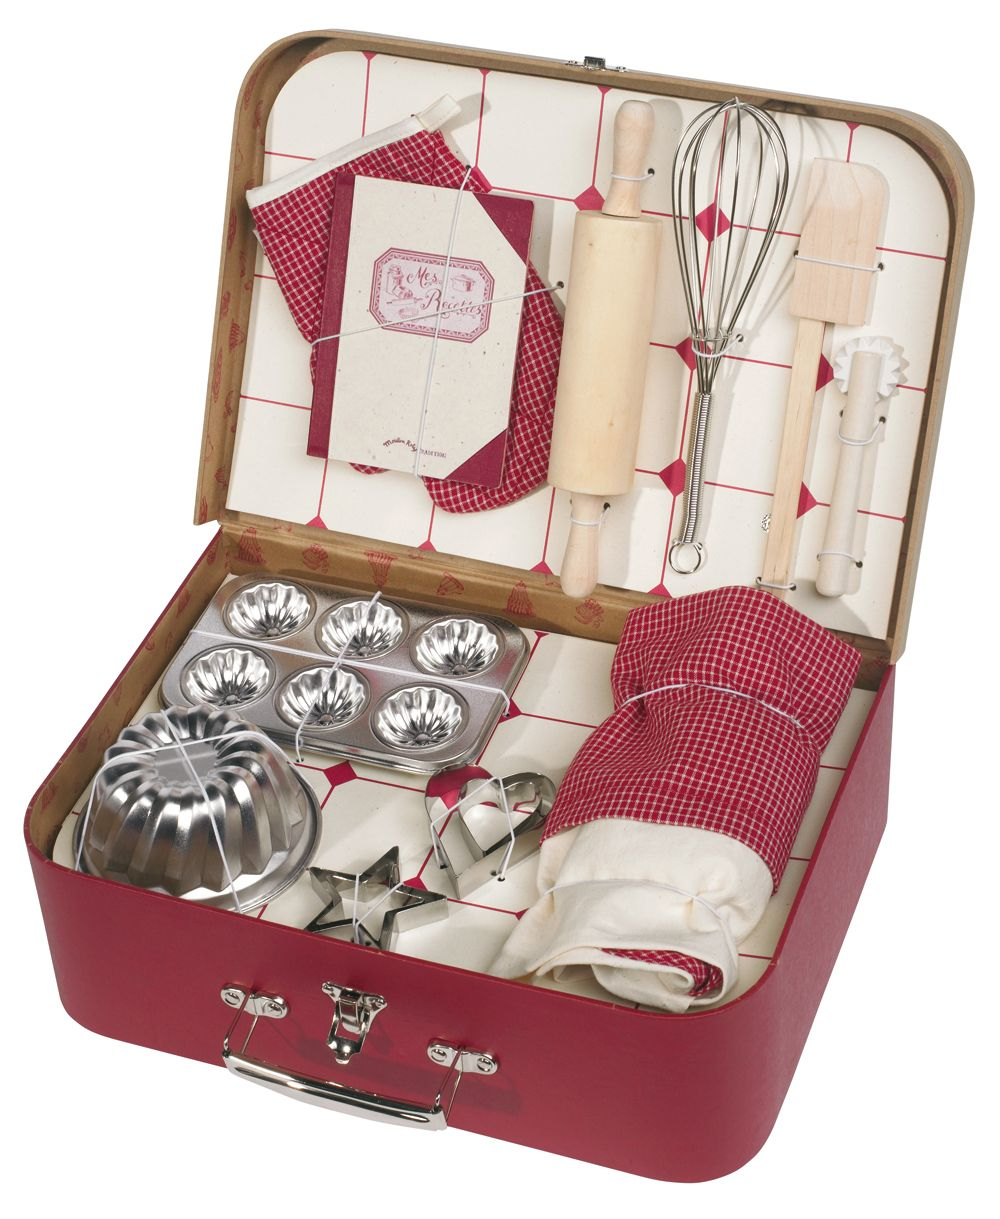 Baking Set with Oven Safe Cookware from Les Valises #710600 ...